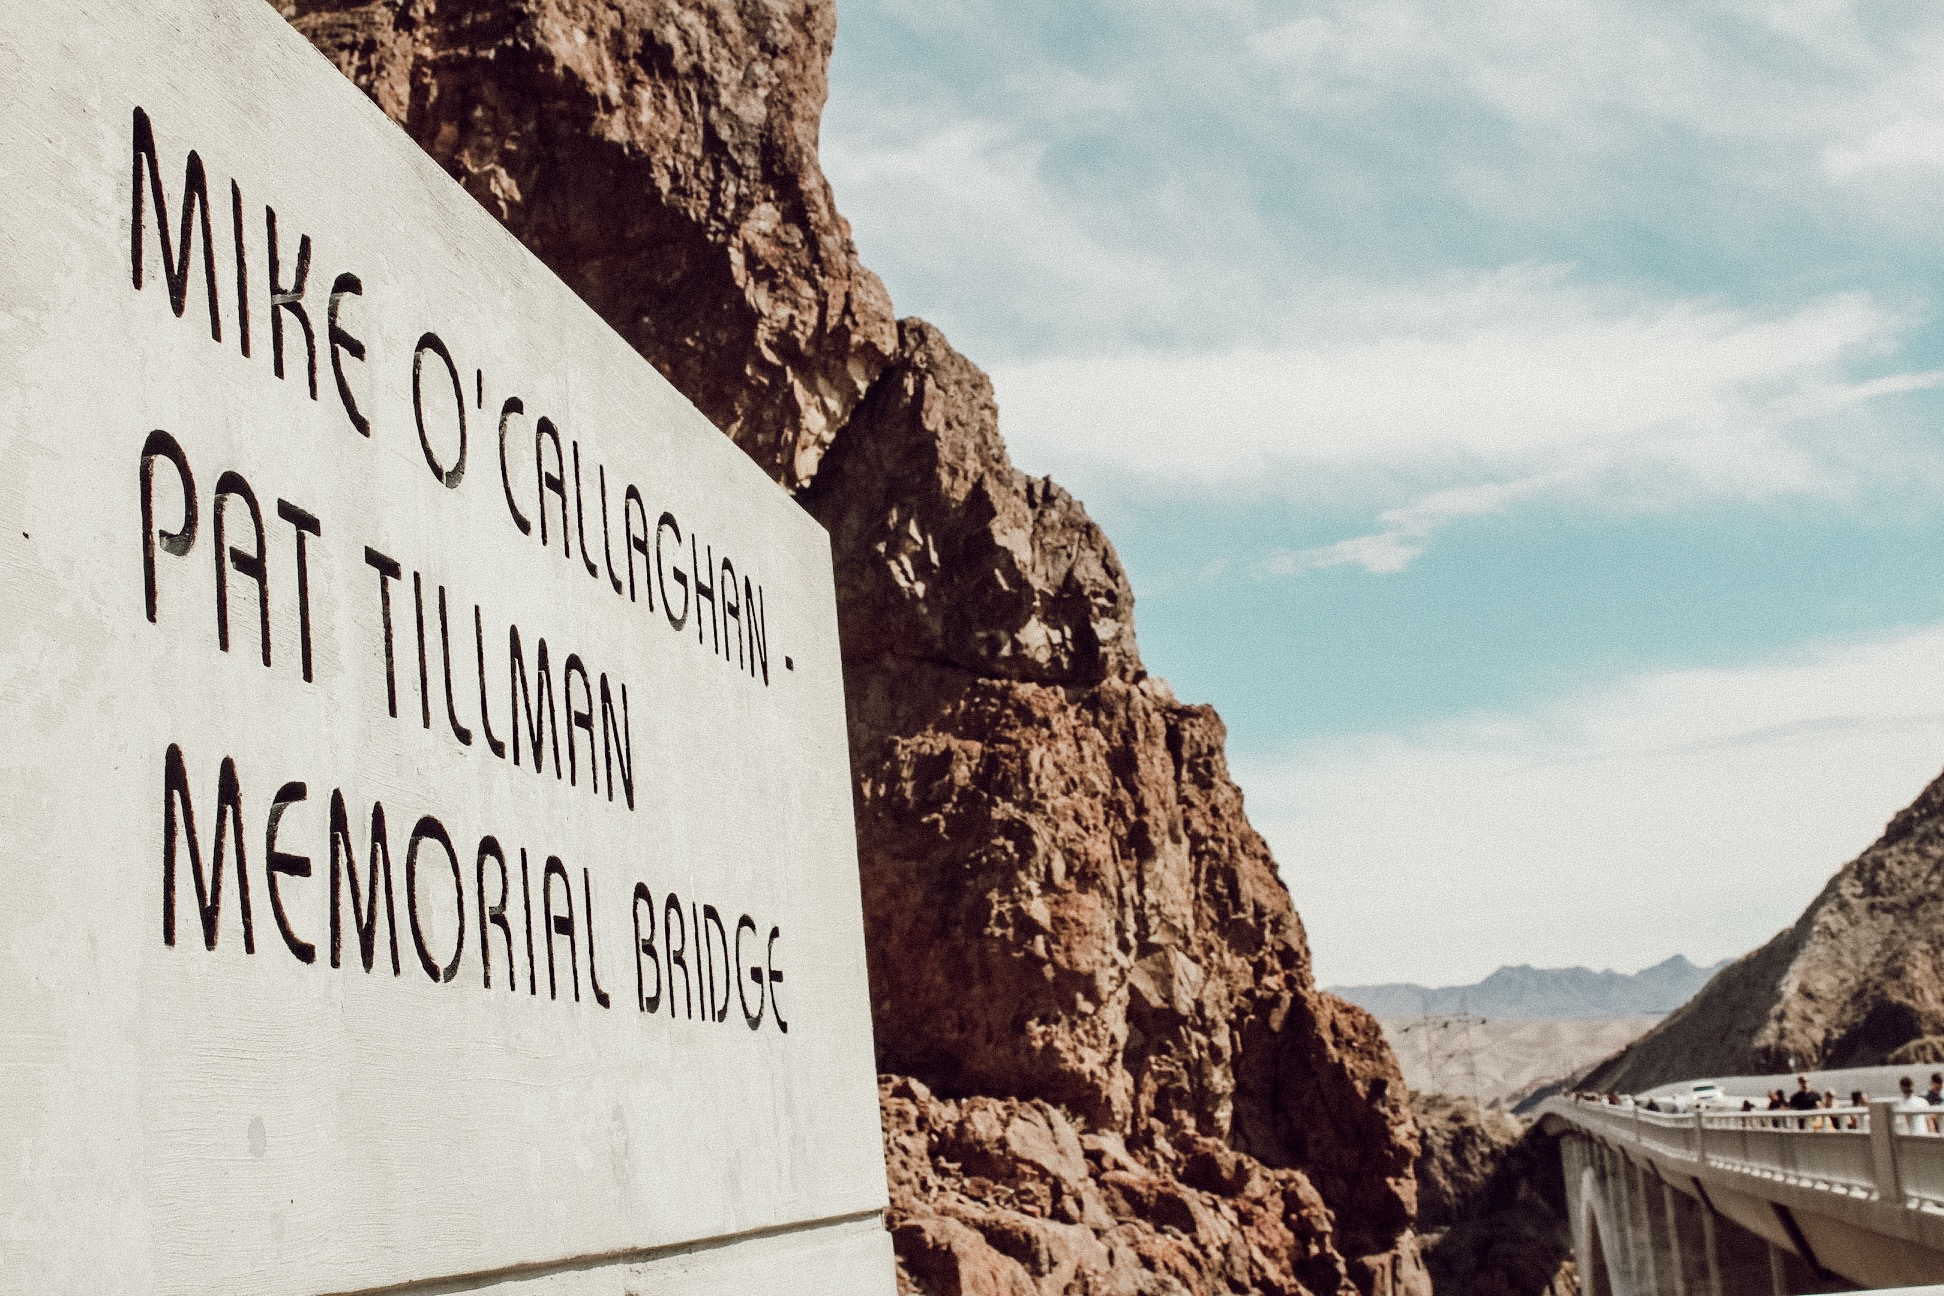 Mike O'Callaghan Pat Tillman Memorial Bridge at Lake Mead Hoover Dam